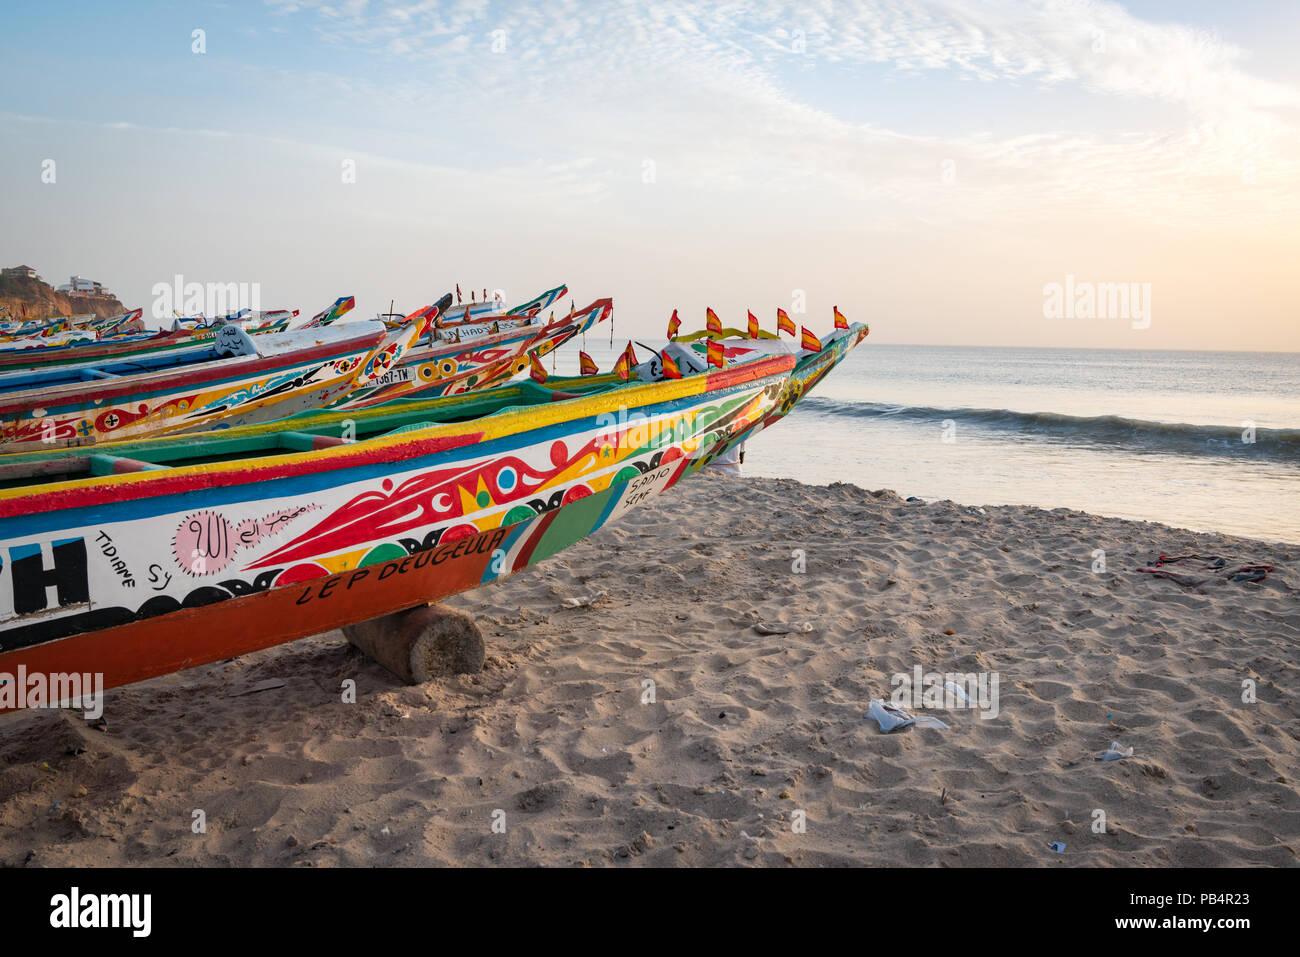 Colourful boats on the beach at Toubab Dialao, Senegal - Stock Image